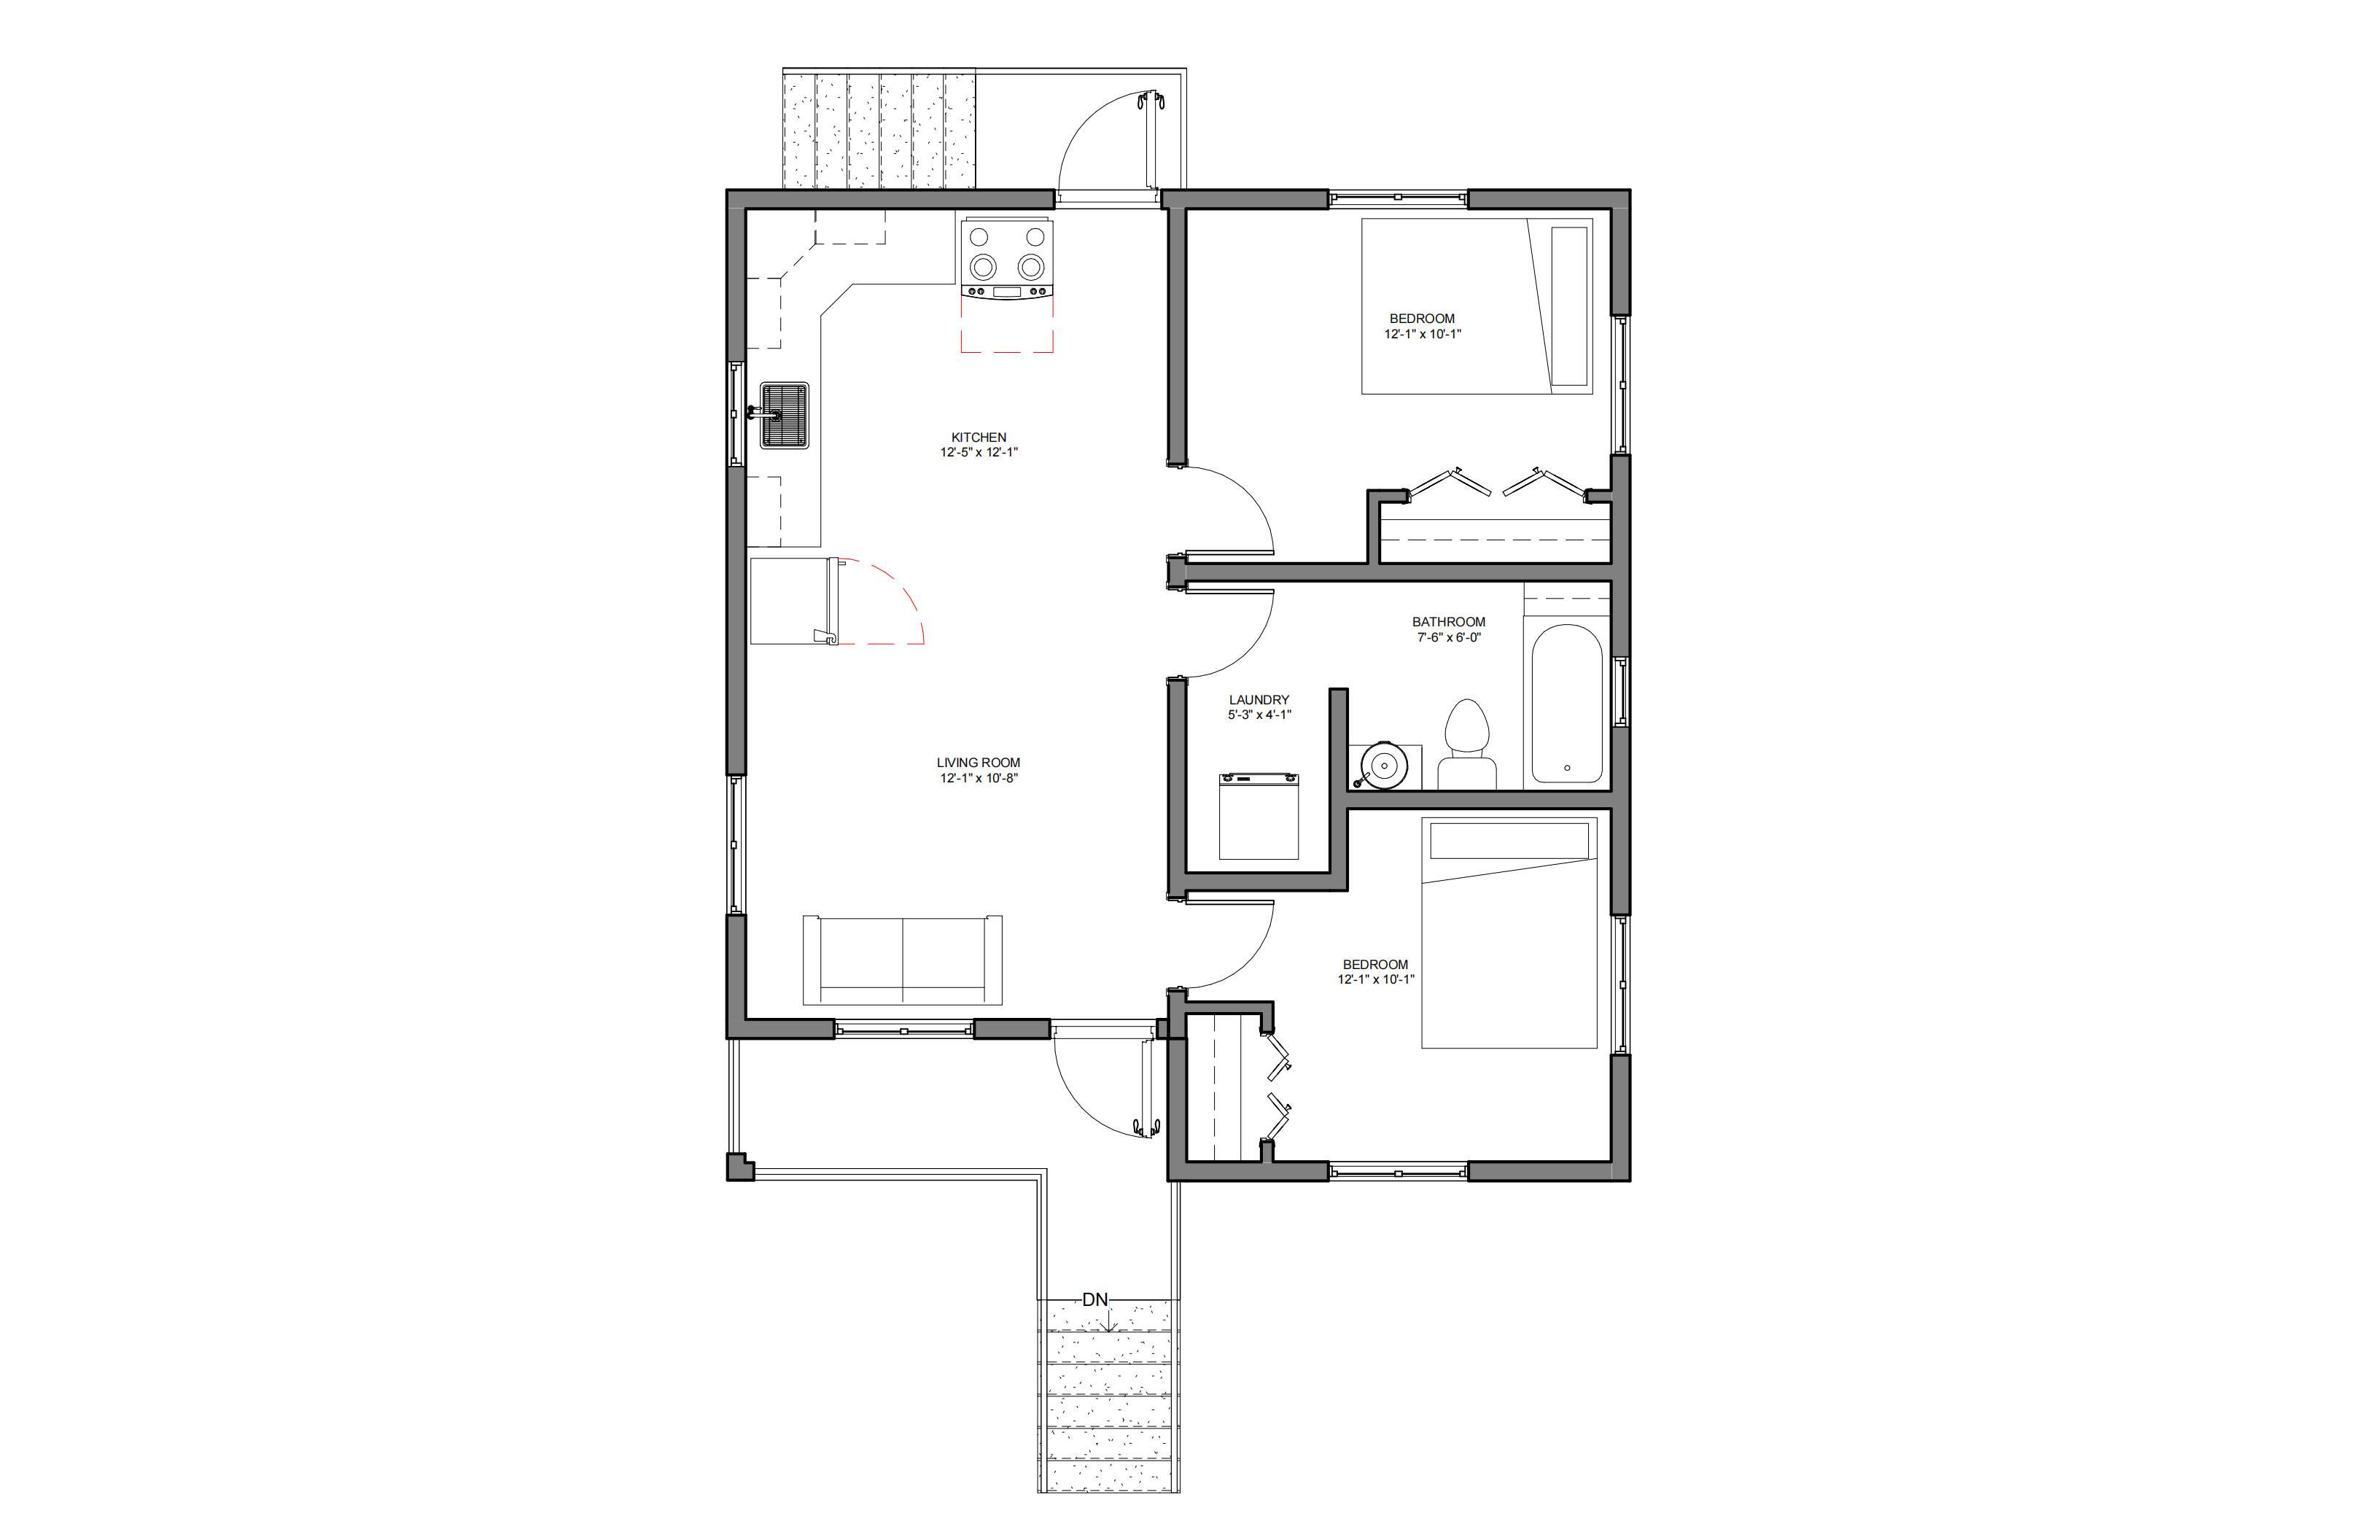 Radar 2Bed 1Bath Floor Plan 700 SQFT